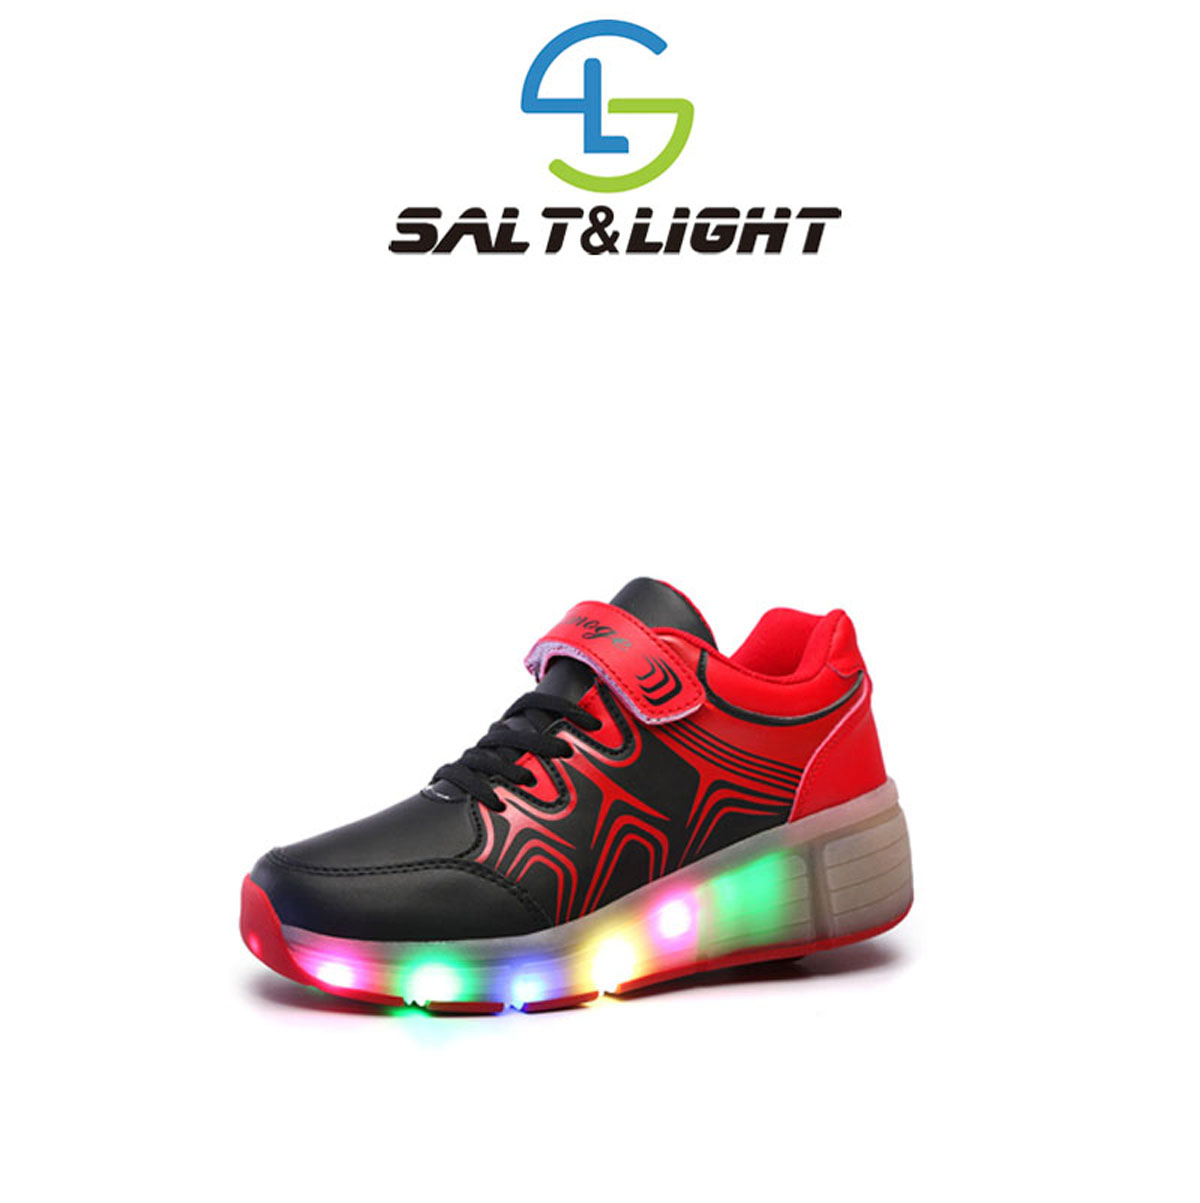 Children Heelys Wear-Resisting Wheels Shoes Boy & Girl Automatic LED Lighted Flashing Roller Skates Kids Fashion Sneakers(China (Mainland))